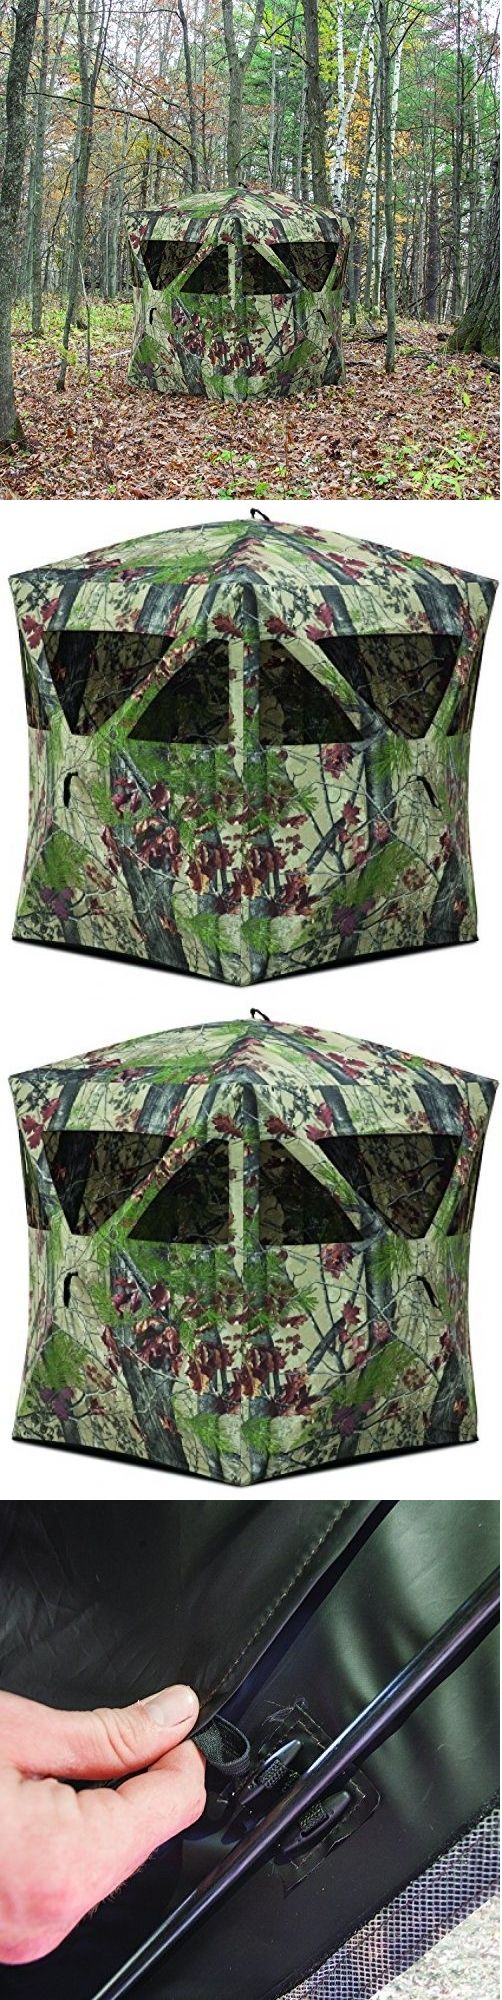 Blinds 177910: Deer Hunting Blind Tent Portable Camouflage Shelter 2 Person Water Resistant New -> BUY IT NOW ONLY: $116.99 on eBay!